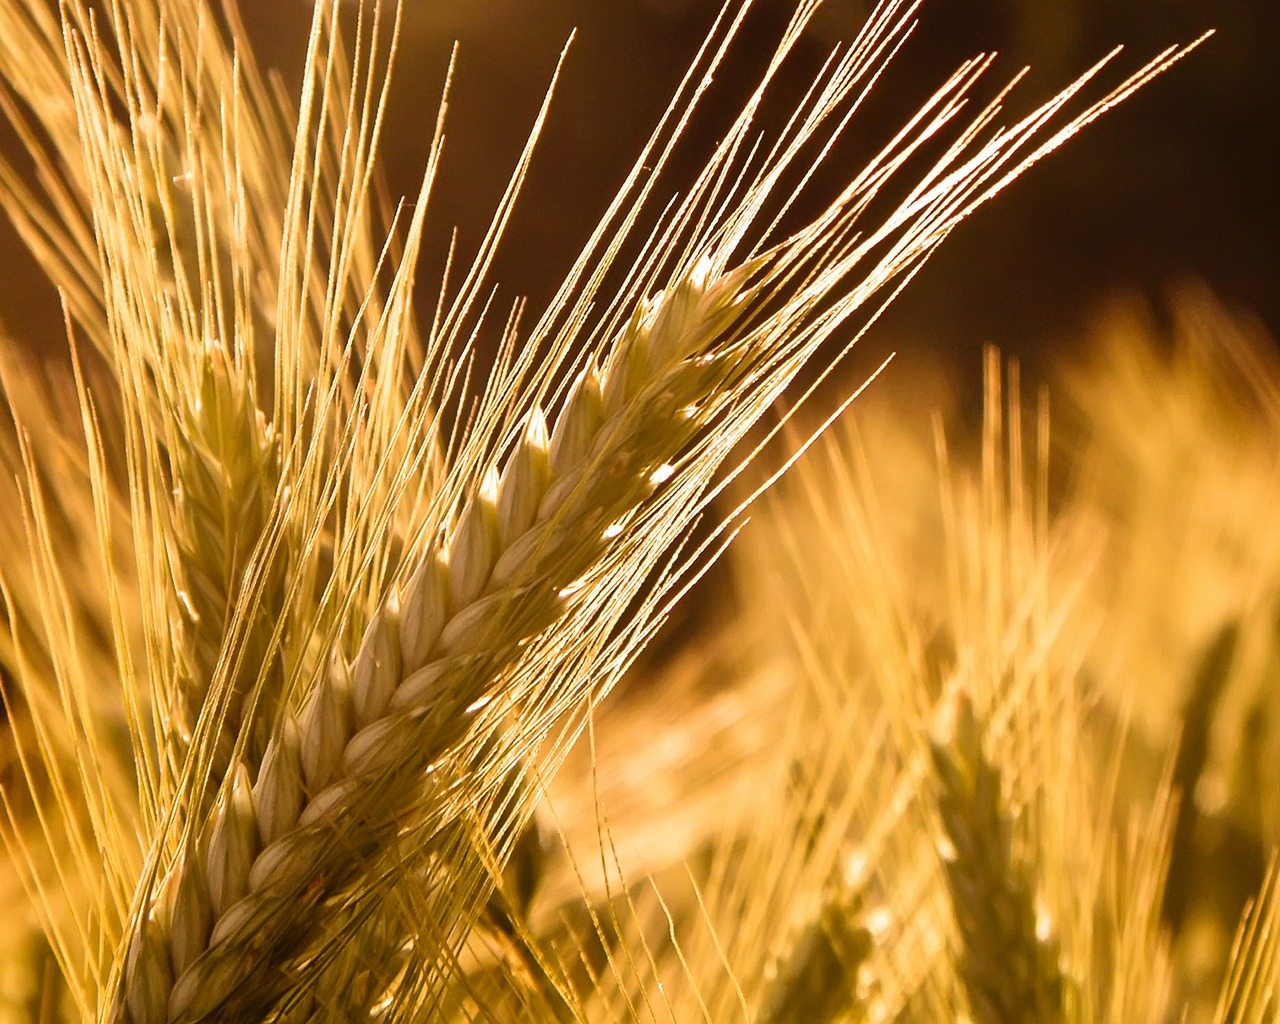 Animated Girly Wallpapers Barley Wallpaper Plants Nature Wallpapers In Jpg Format